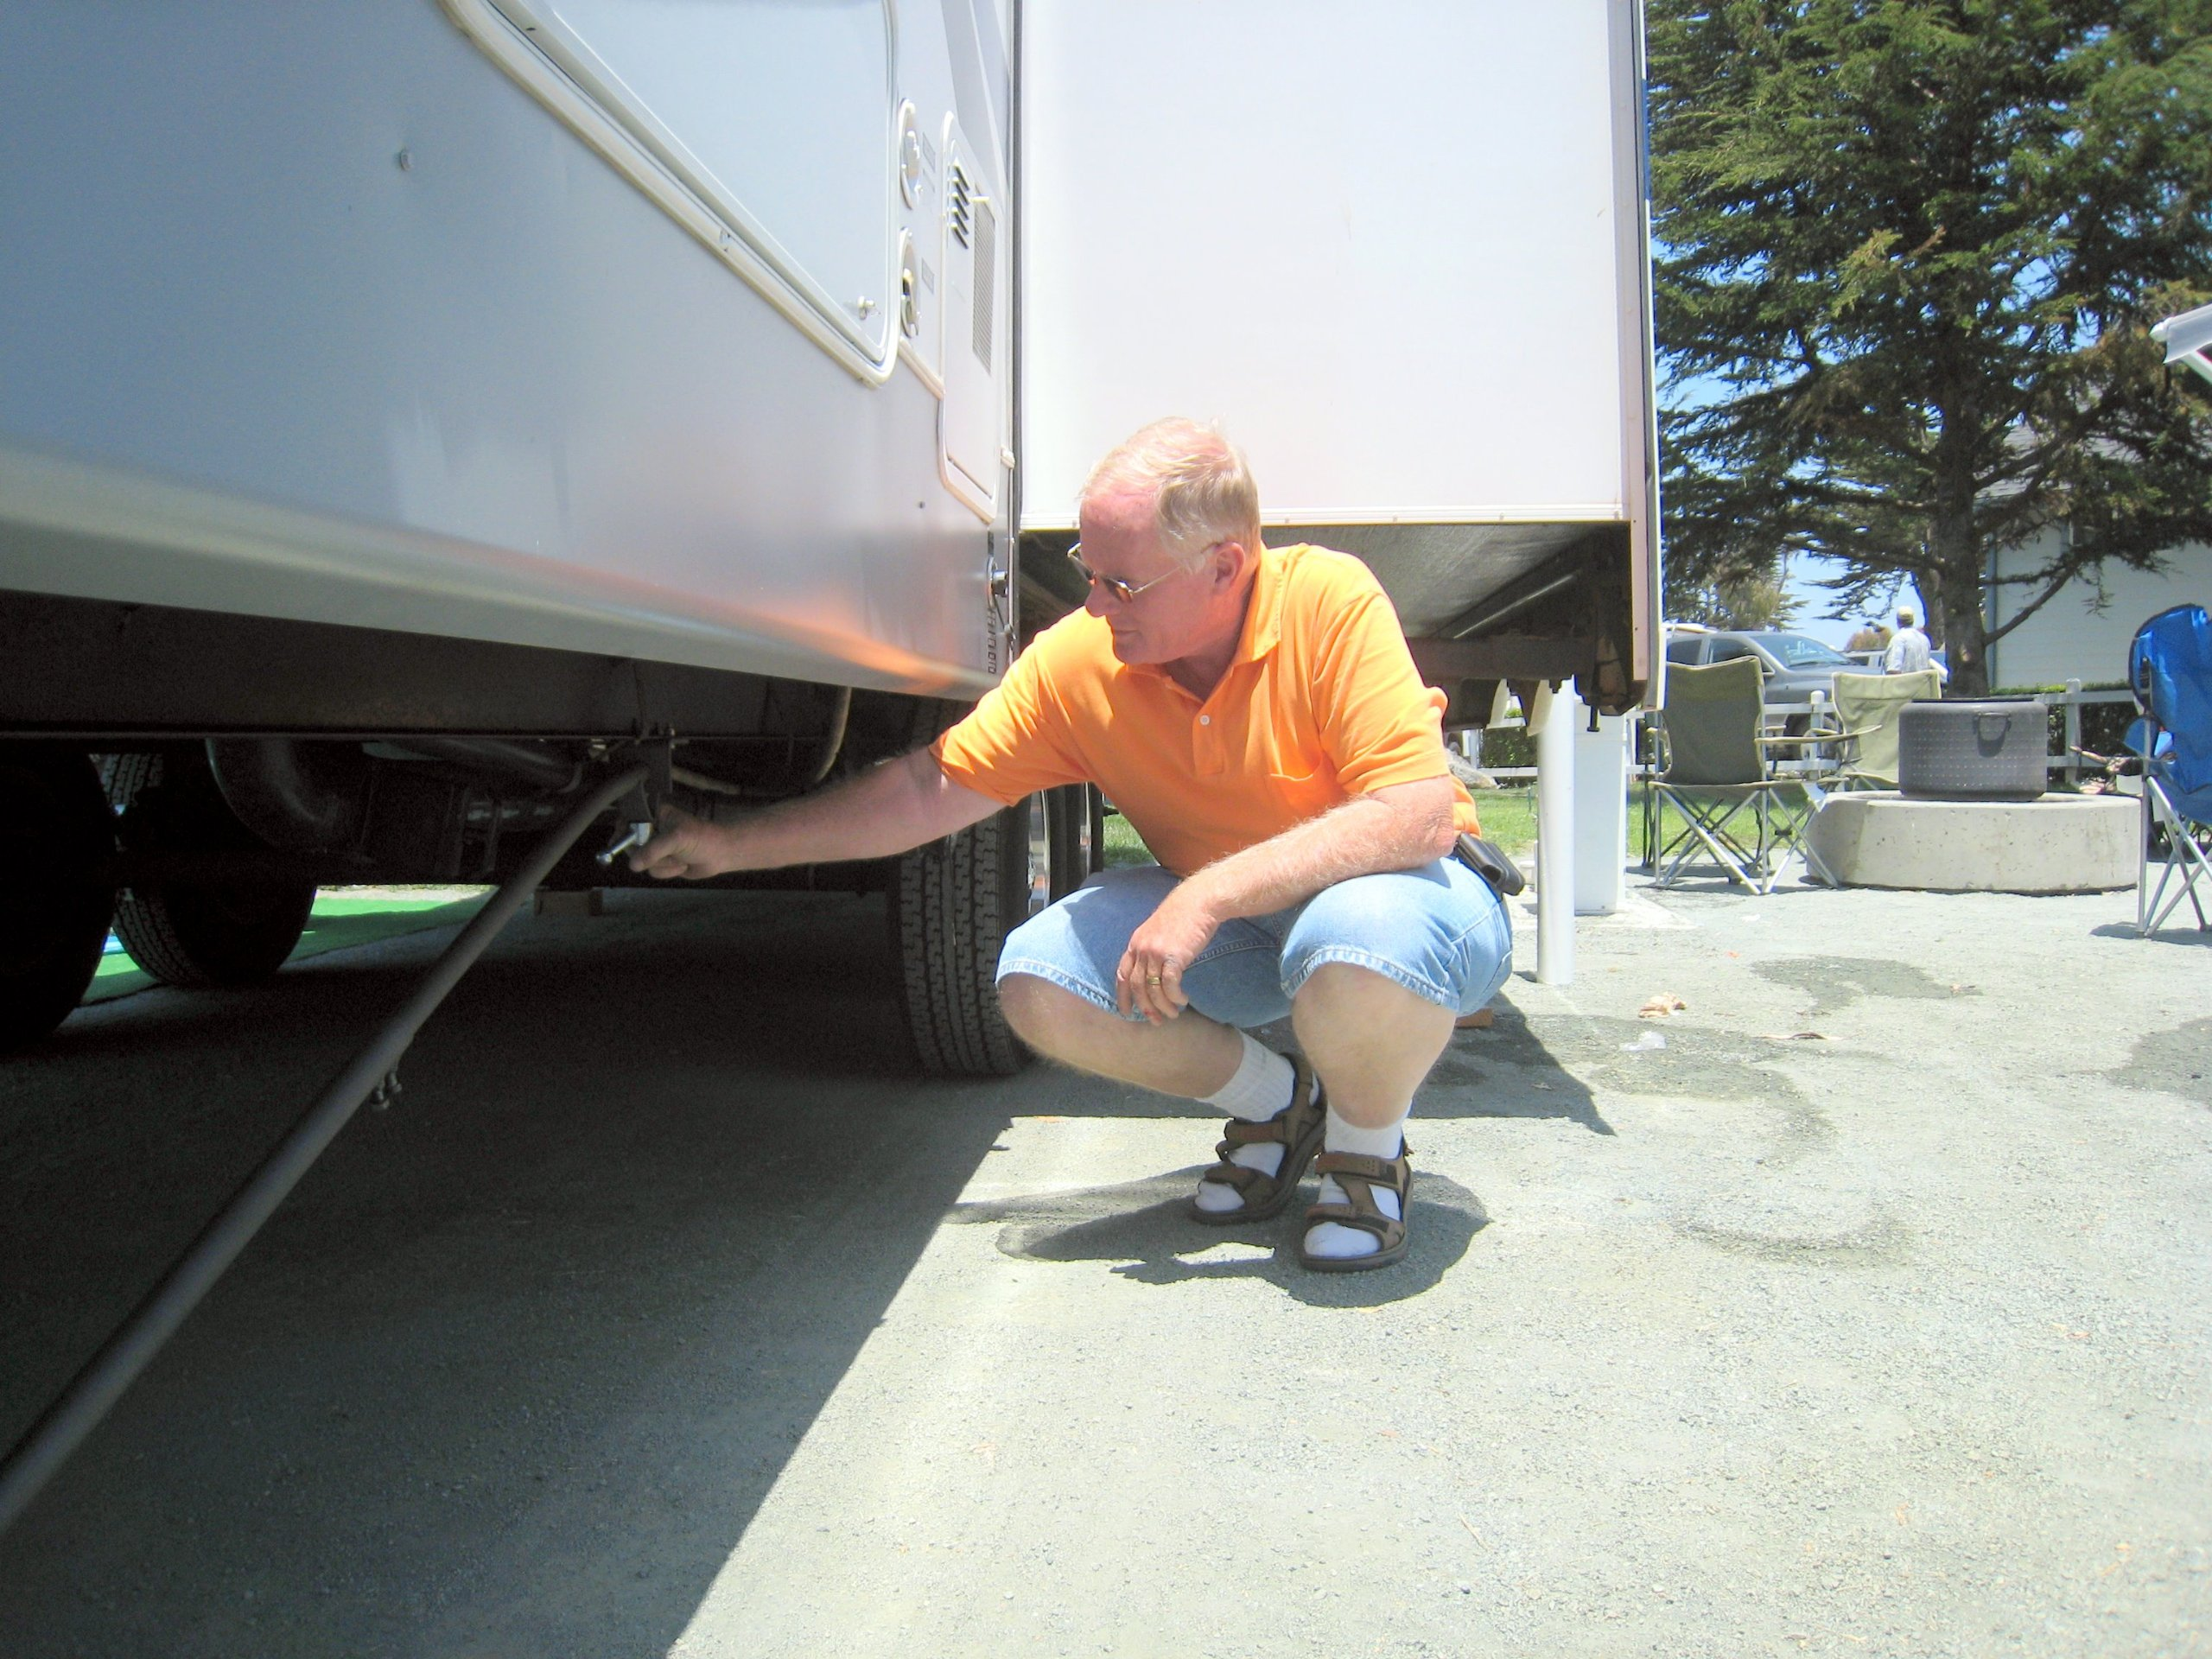 RV Stabilizer System for 5th Wheels and Camper Trailers by SteadyFast